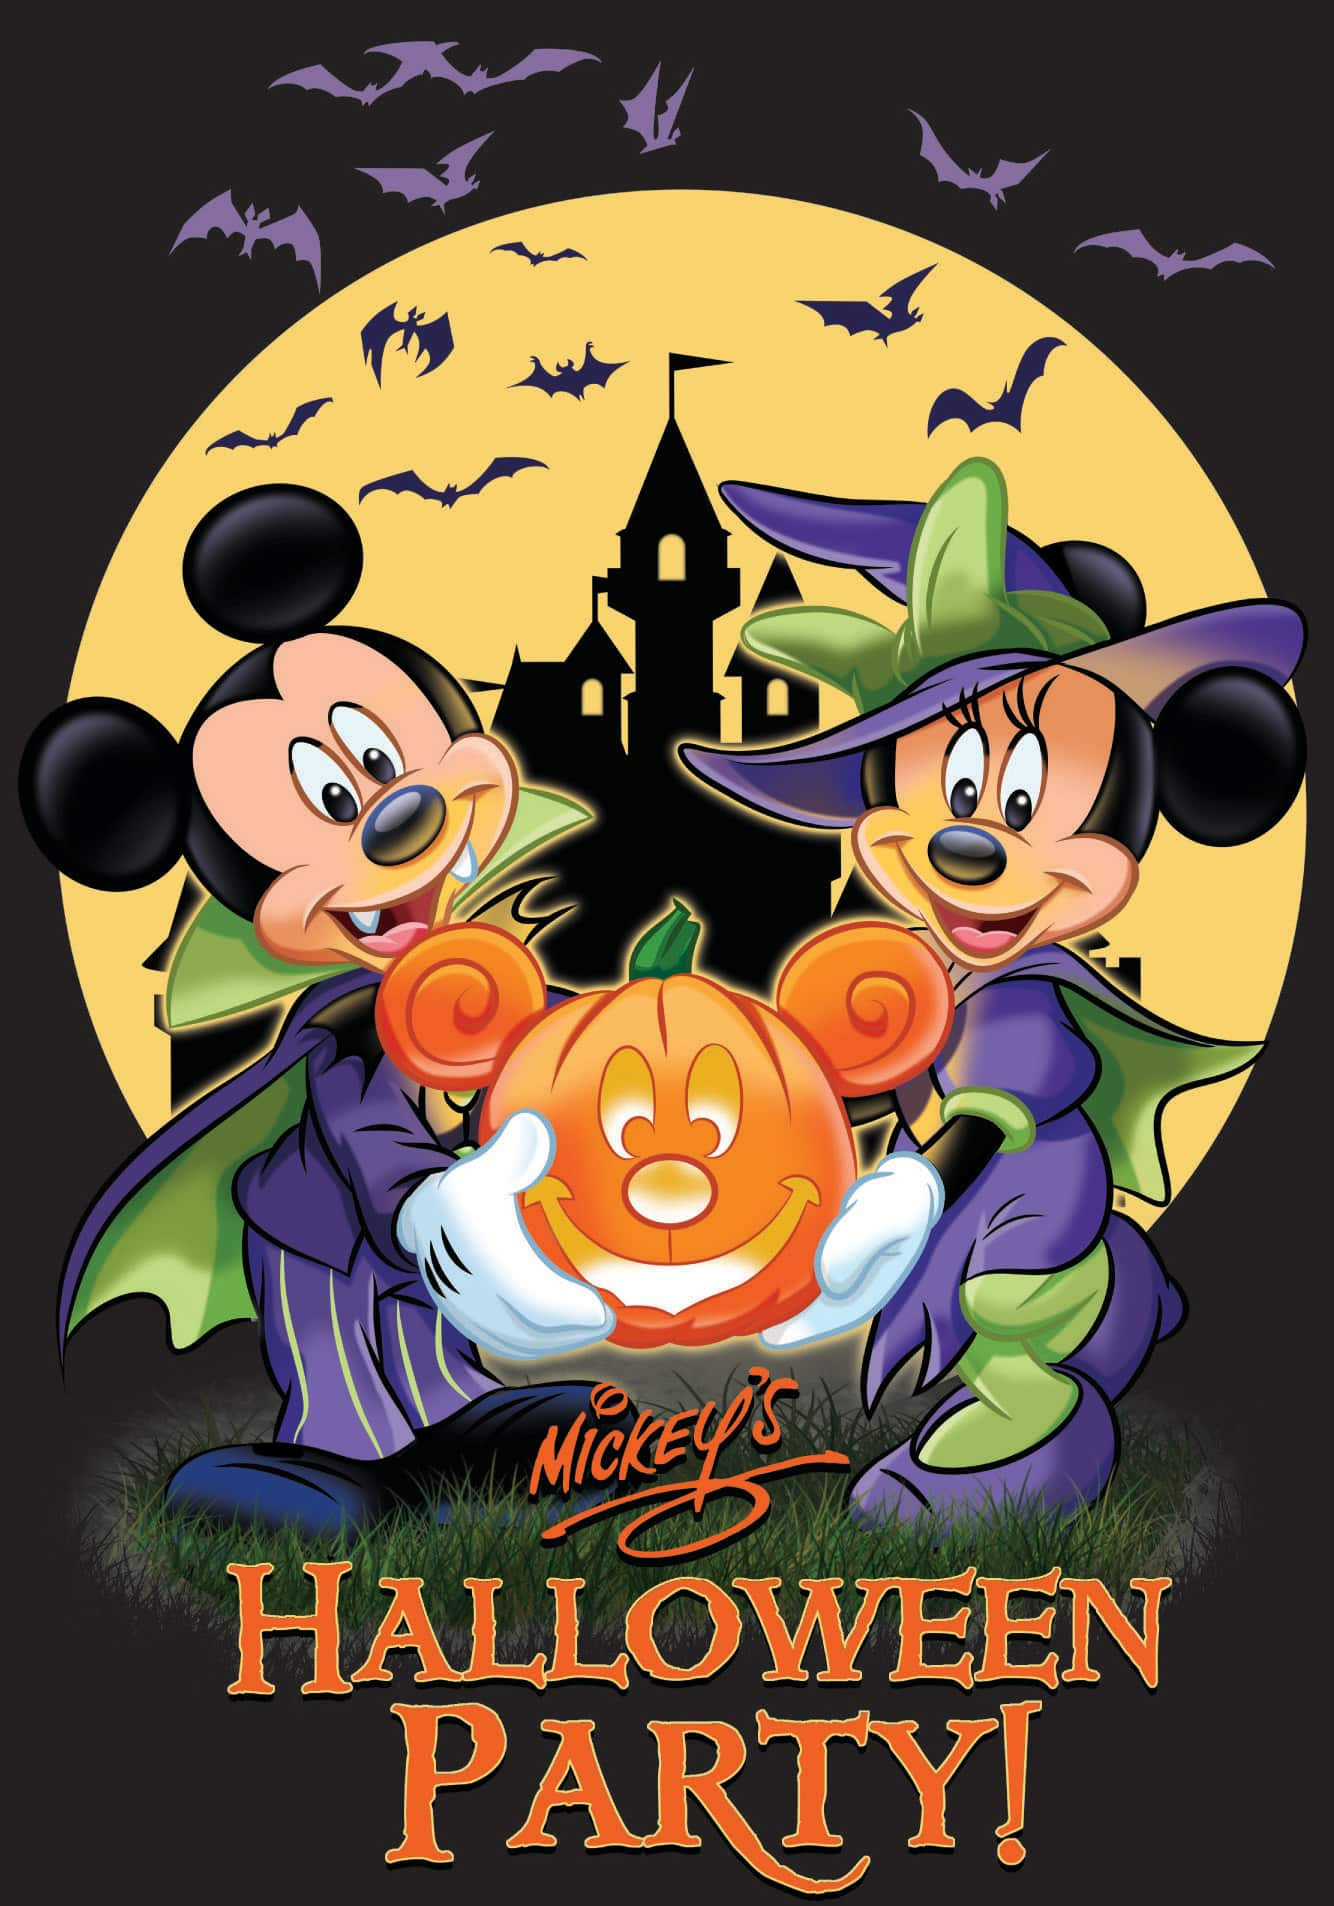 new mickey's halloween party merchandise coming to the disneyland